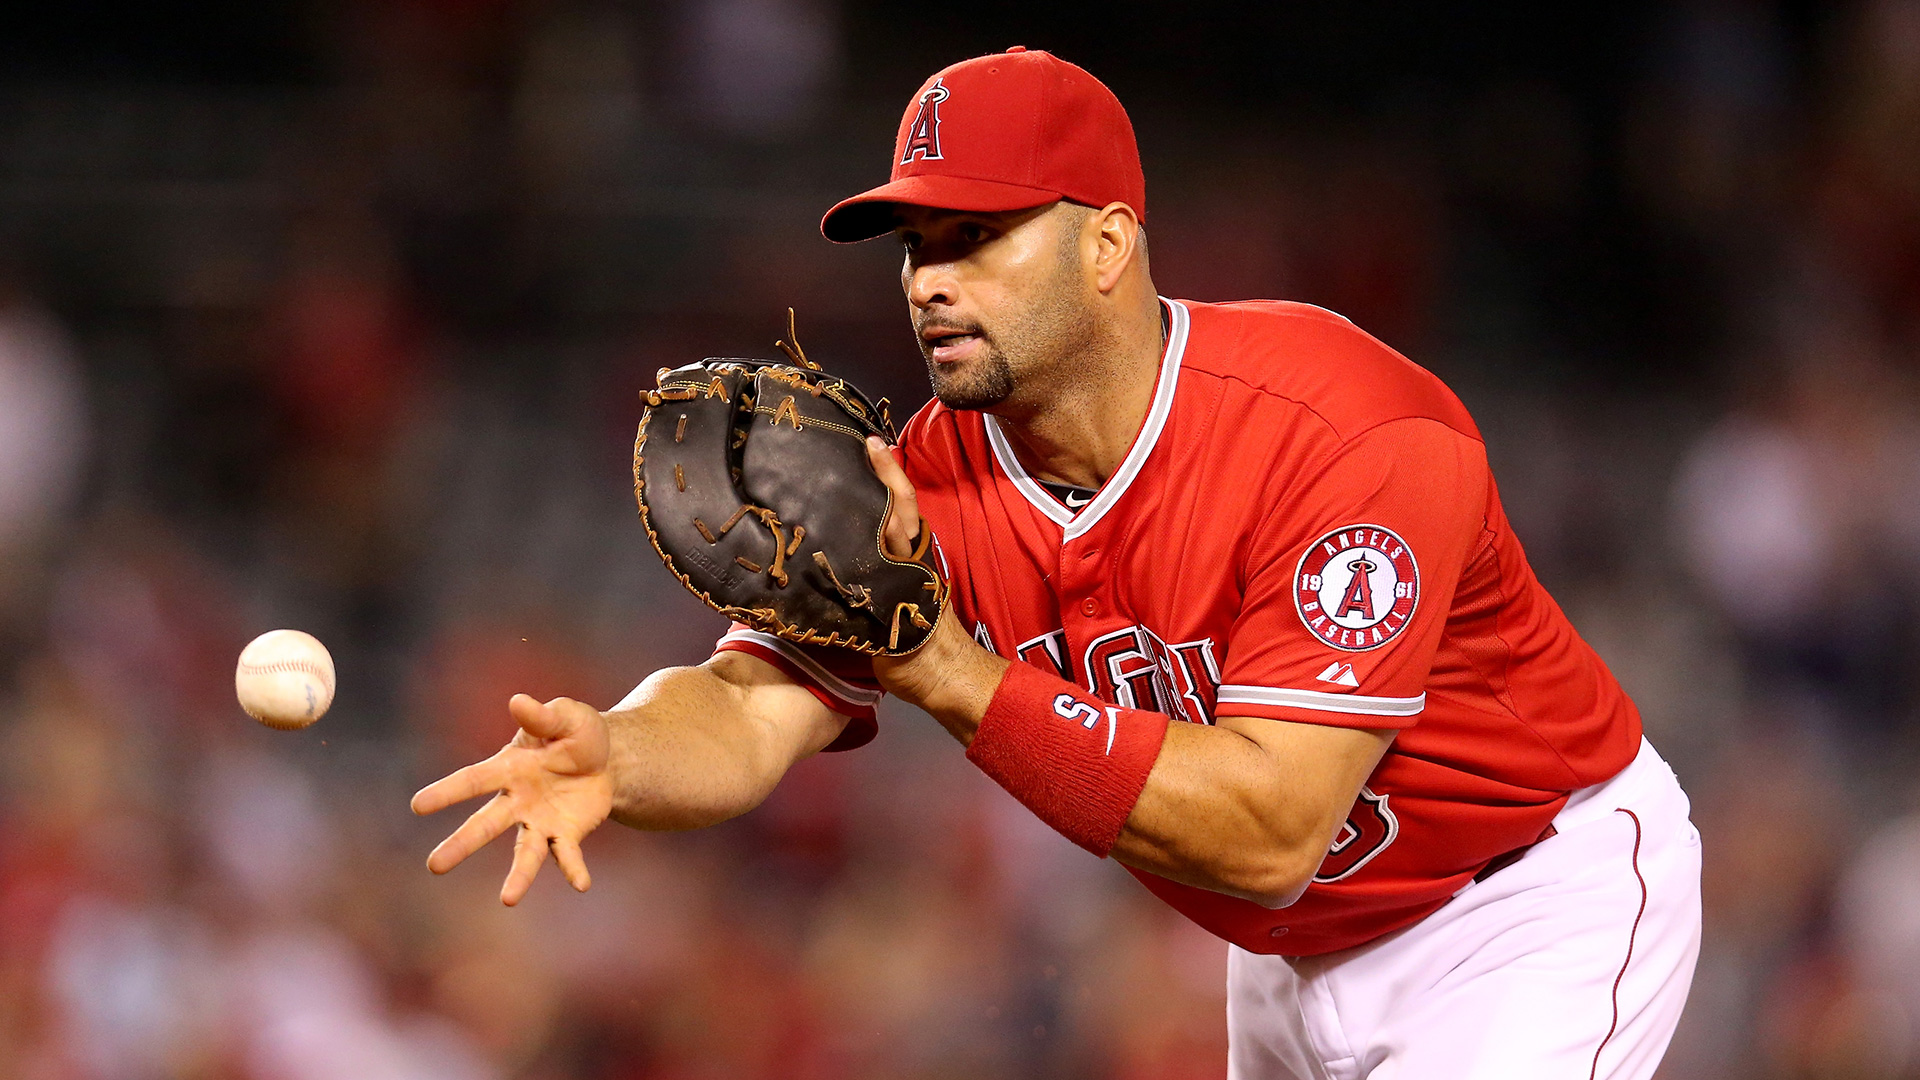 MLB rumors: Albert Pujols agrees to sign with the Dodgers